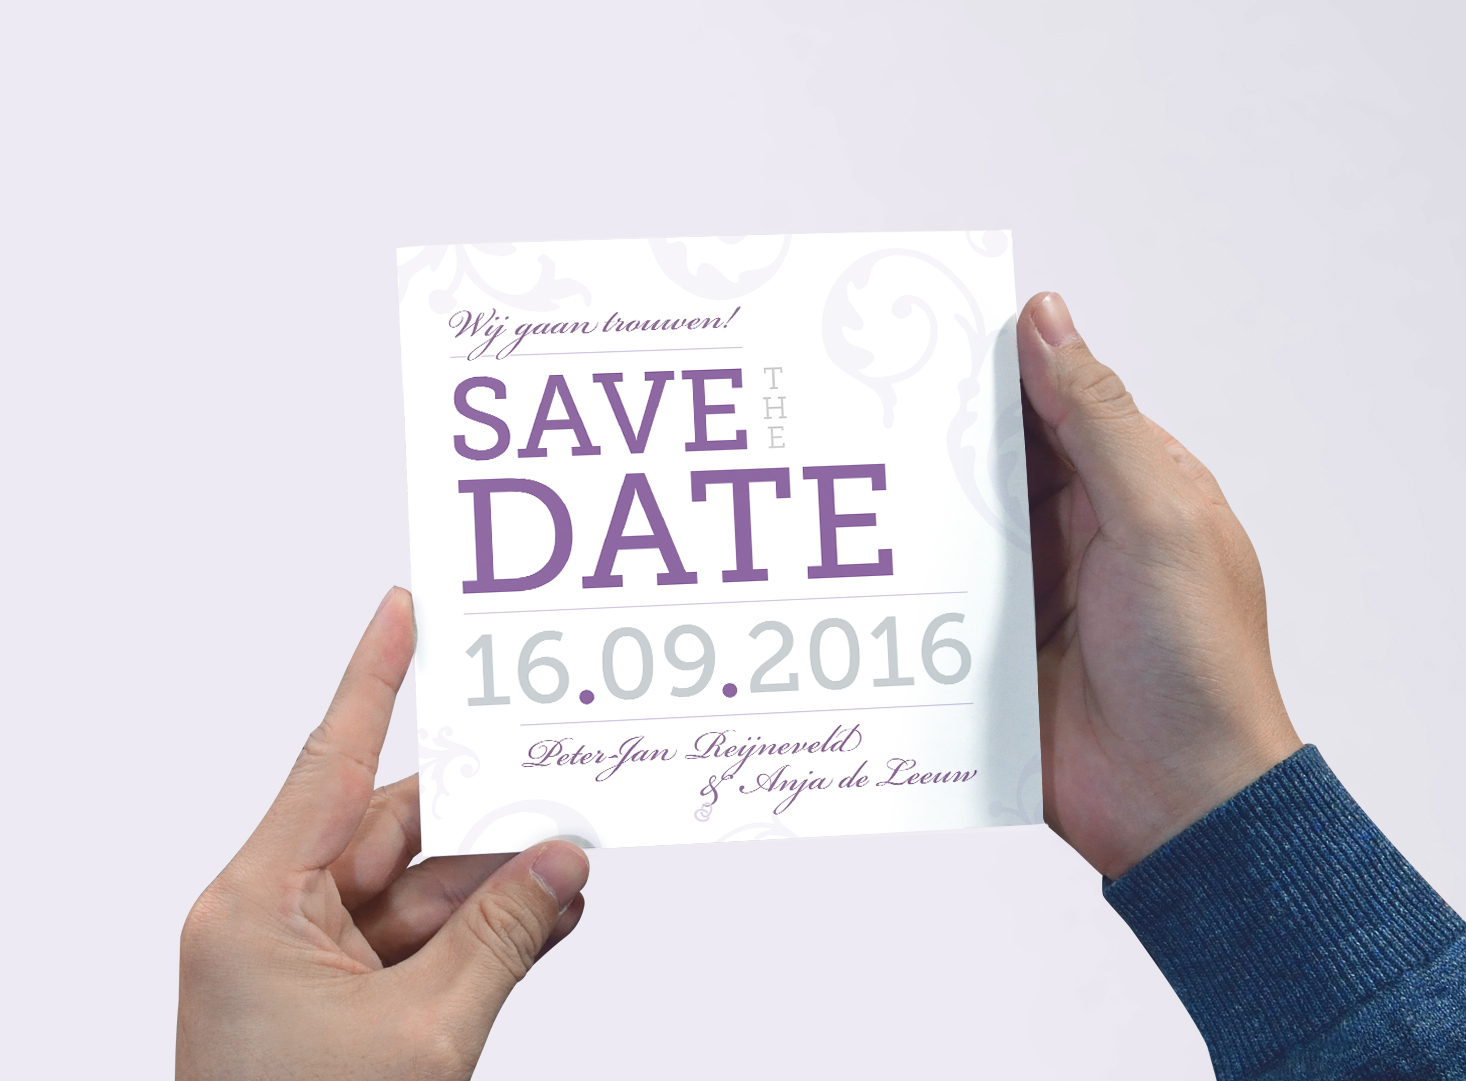 Trouwdag PJ&A - Save the Date kaart